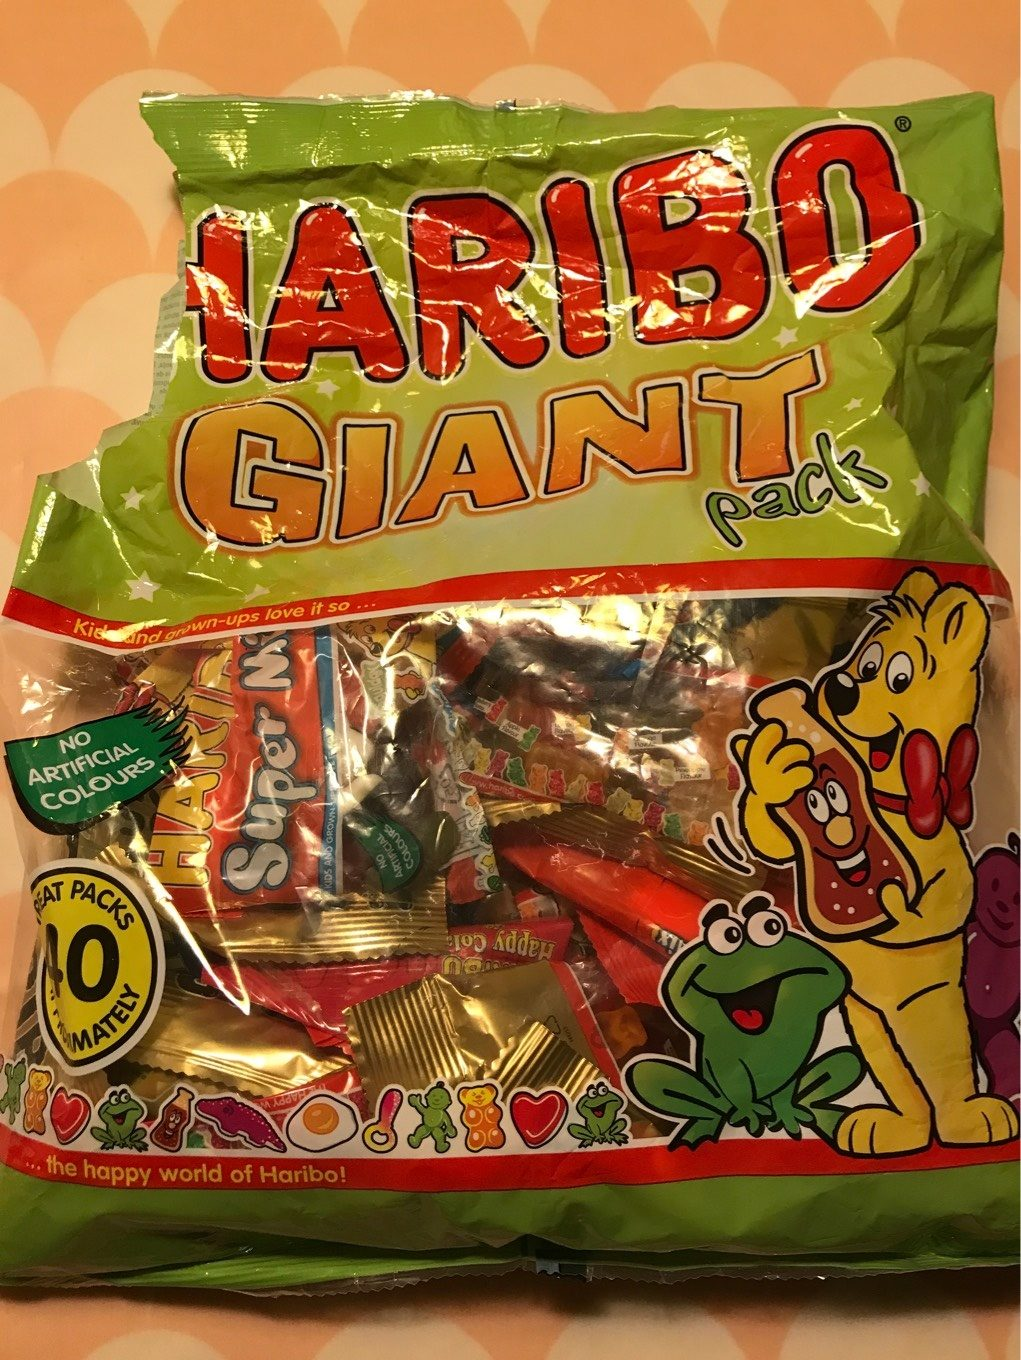 Haribo Giant Pack of Mixed Variety 1.52 KG - Product - fr